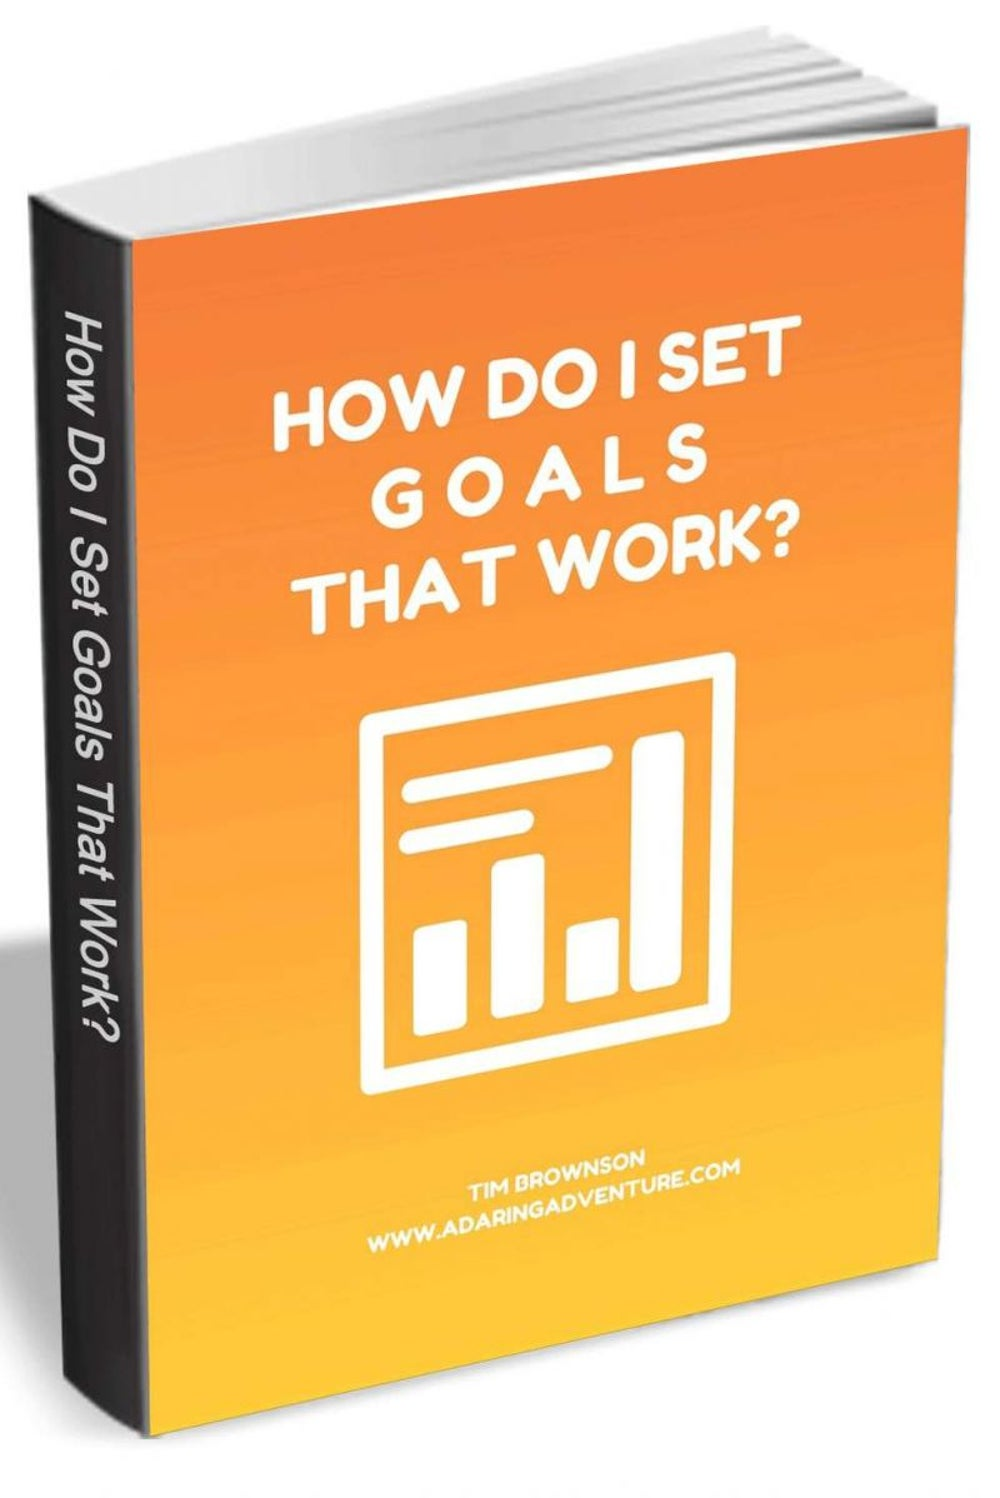 How Do I Set Goals That Work?